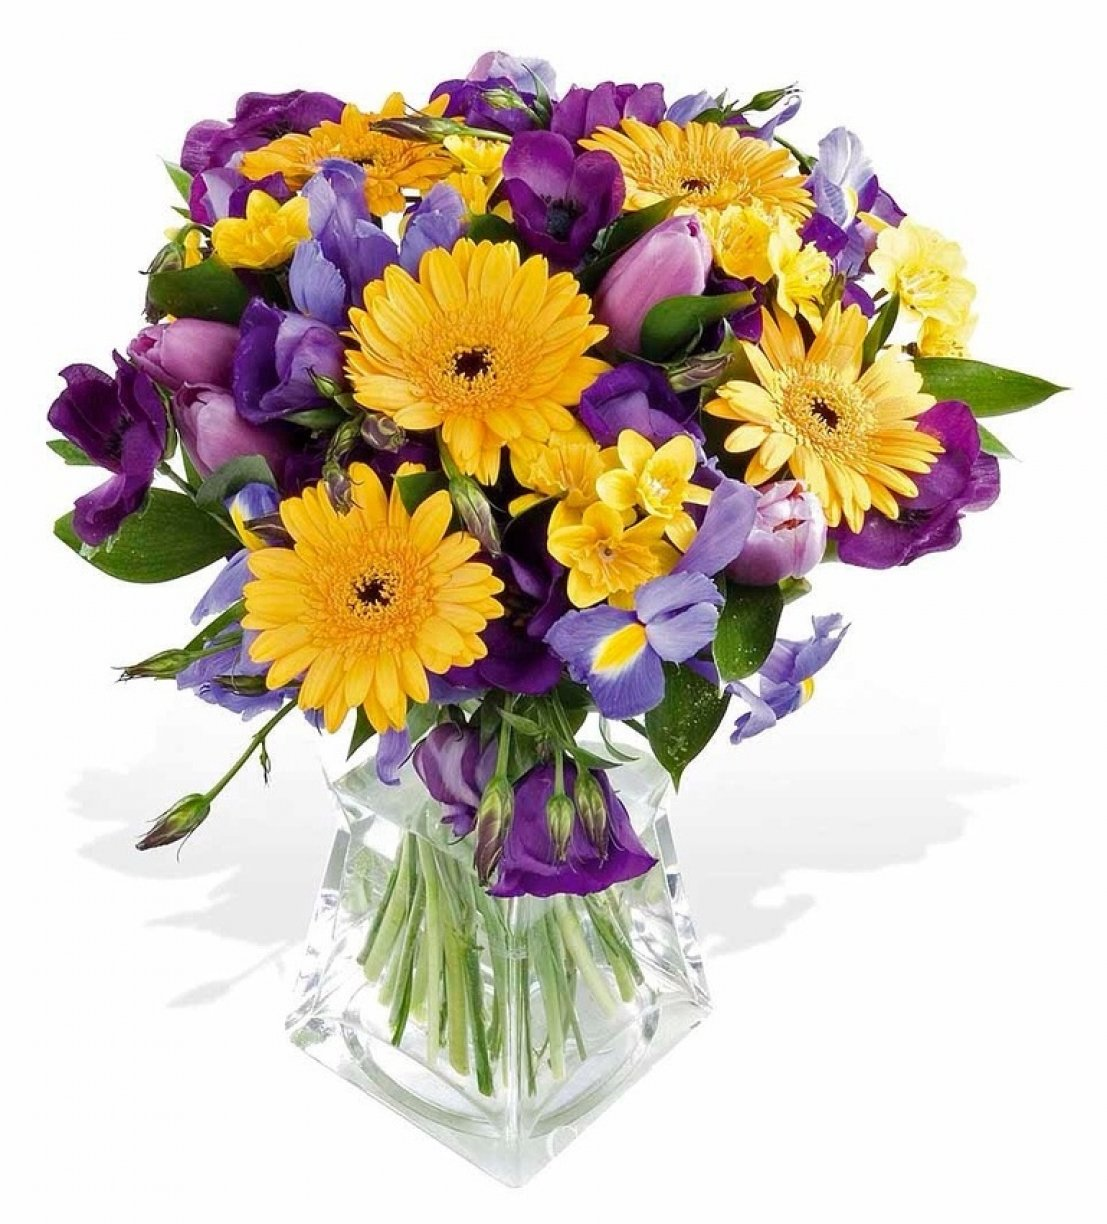 Beautiful Shades of Purple & Yellow flowers arranged in a water bag!